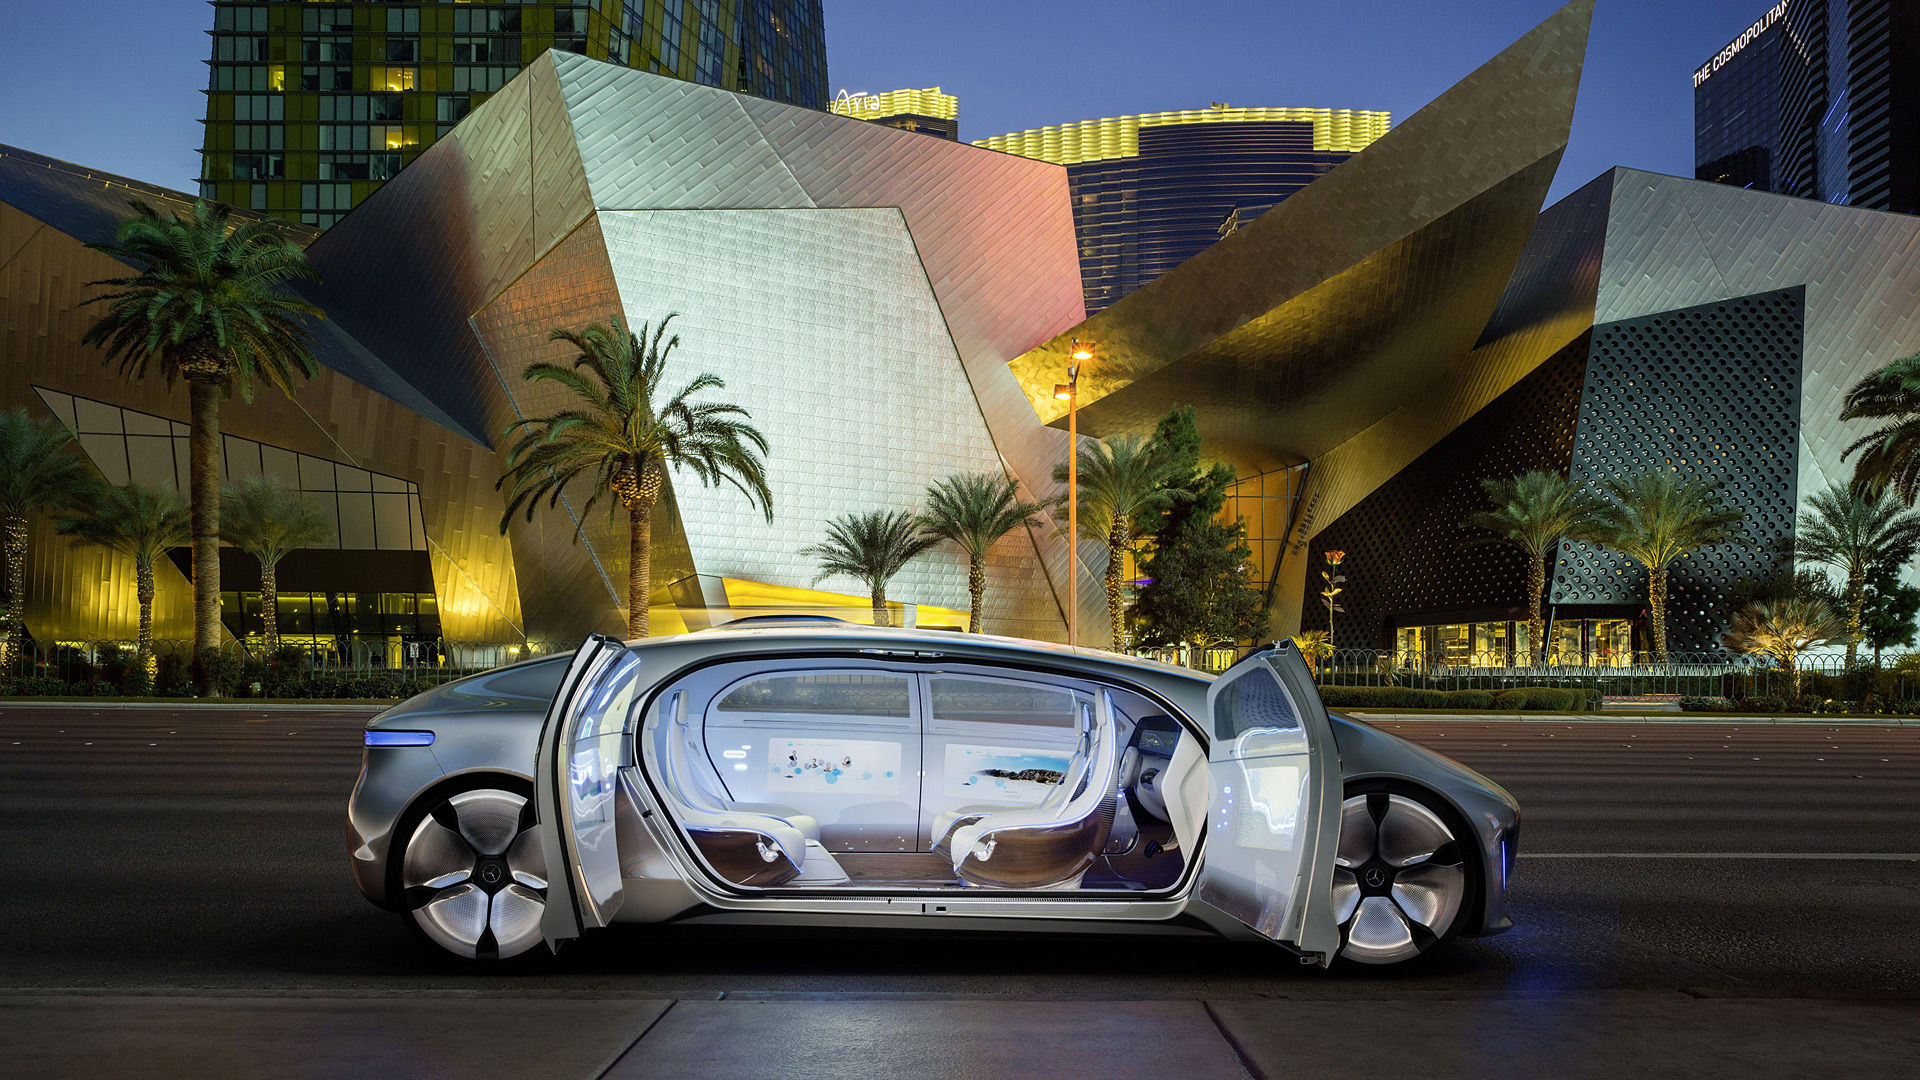 2015 Mercedes-Benz F015 Luxury In Motion Concept